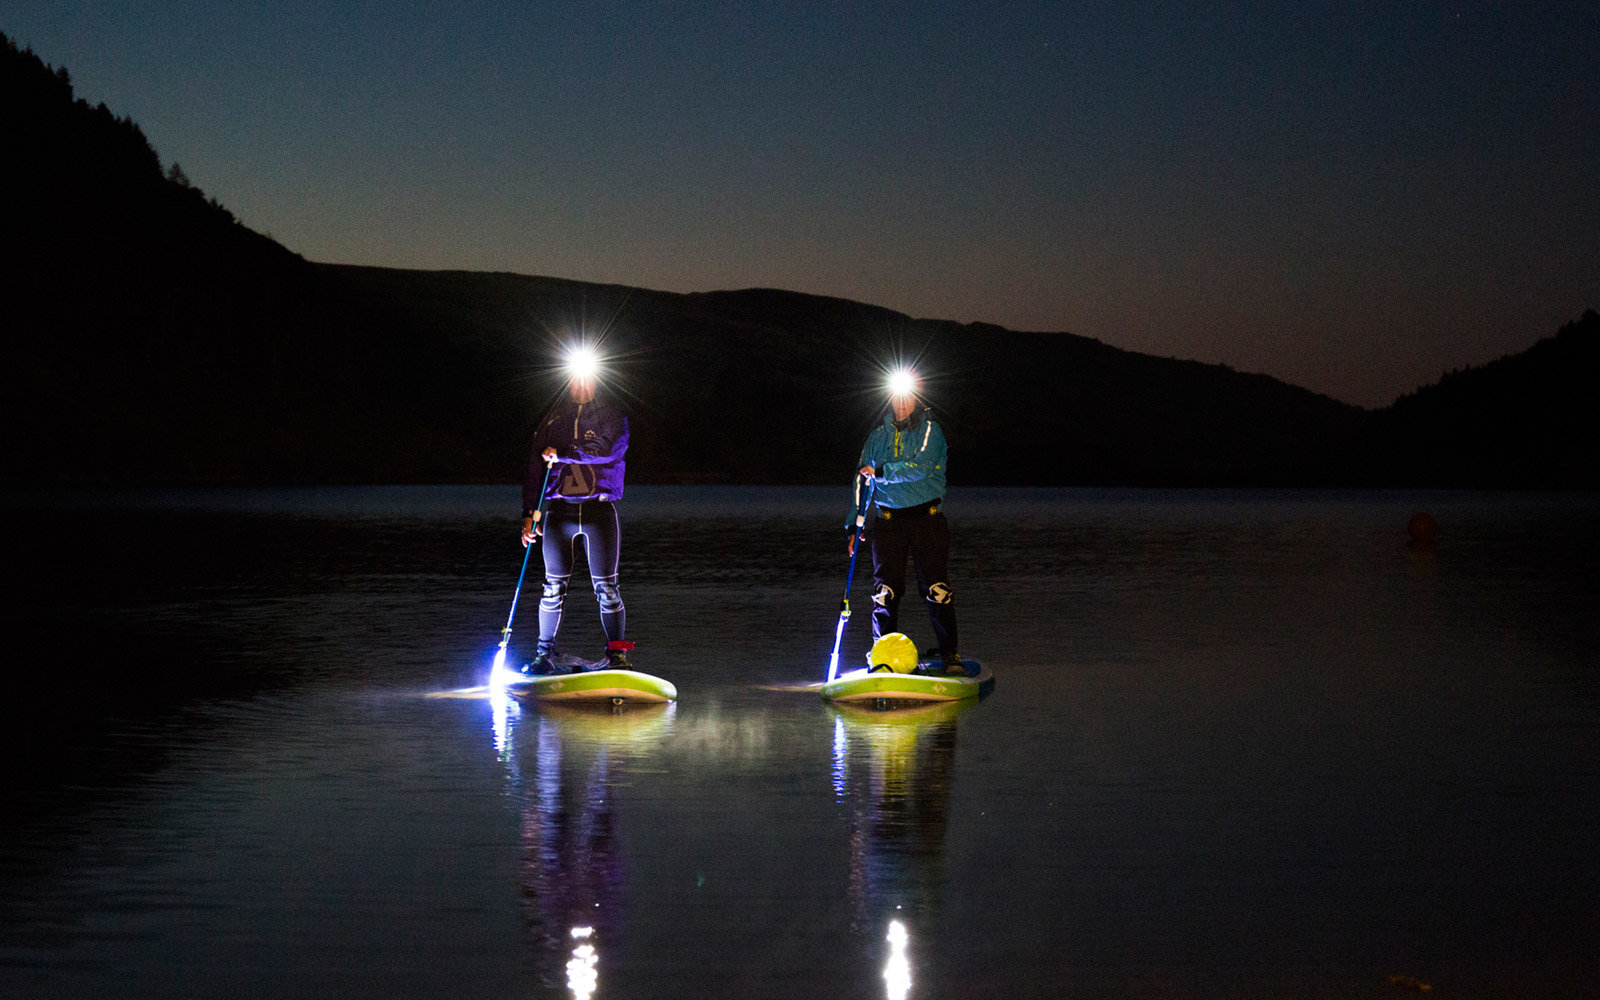 Stand-Up Paddleboarding, Moonlight, Wales, UK